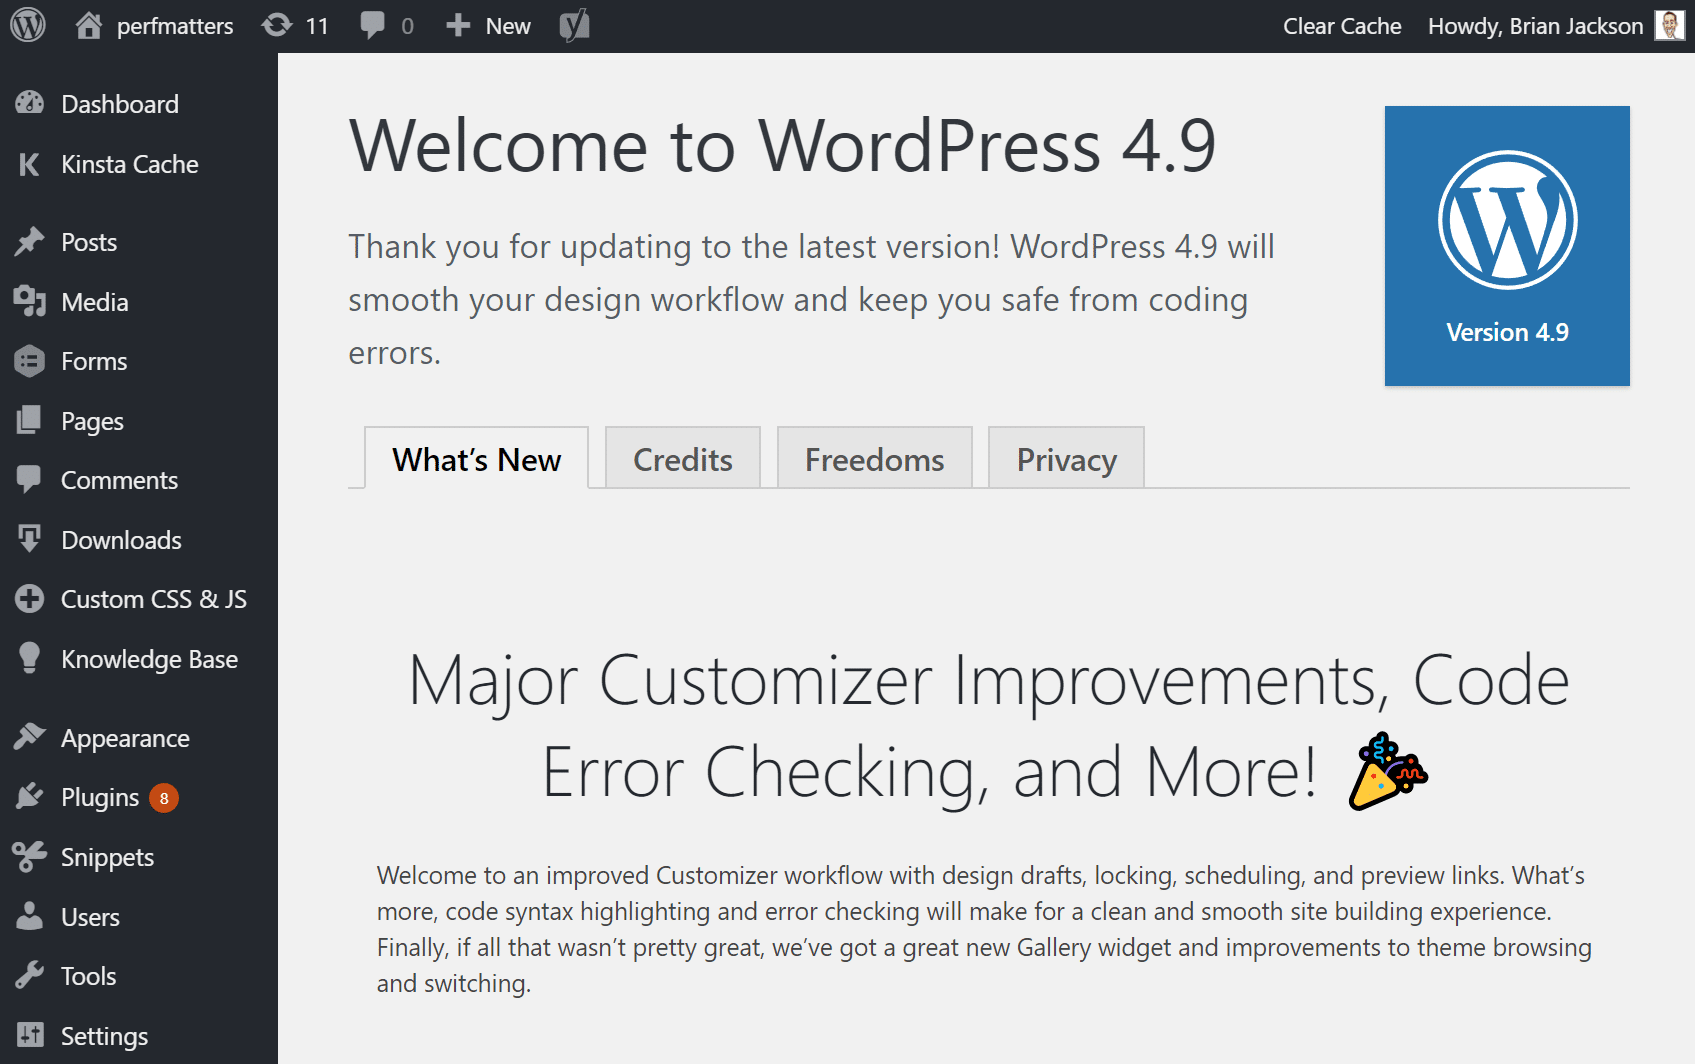 WordPress 4.9 update